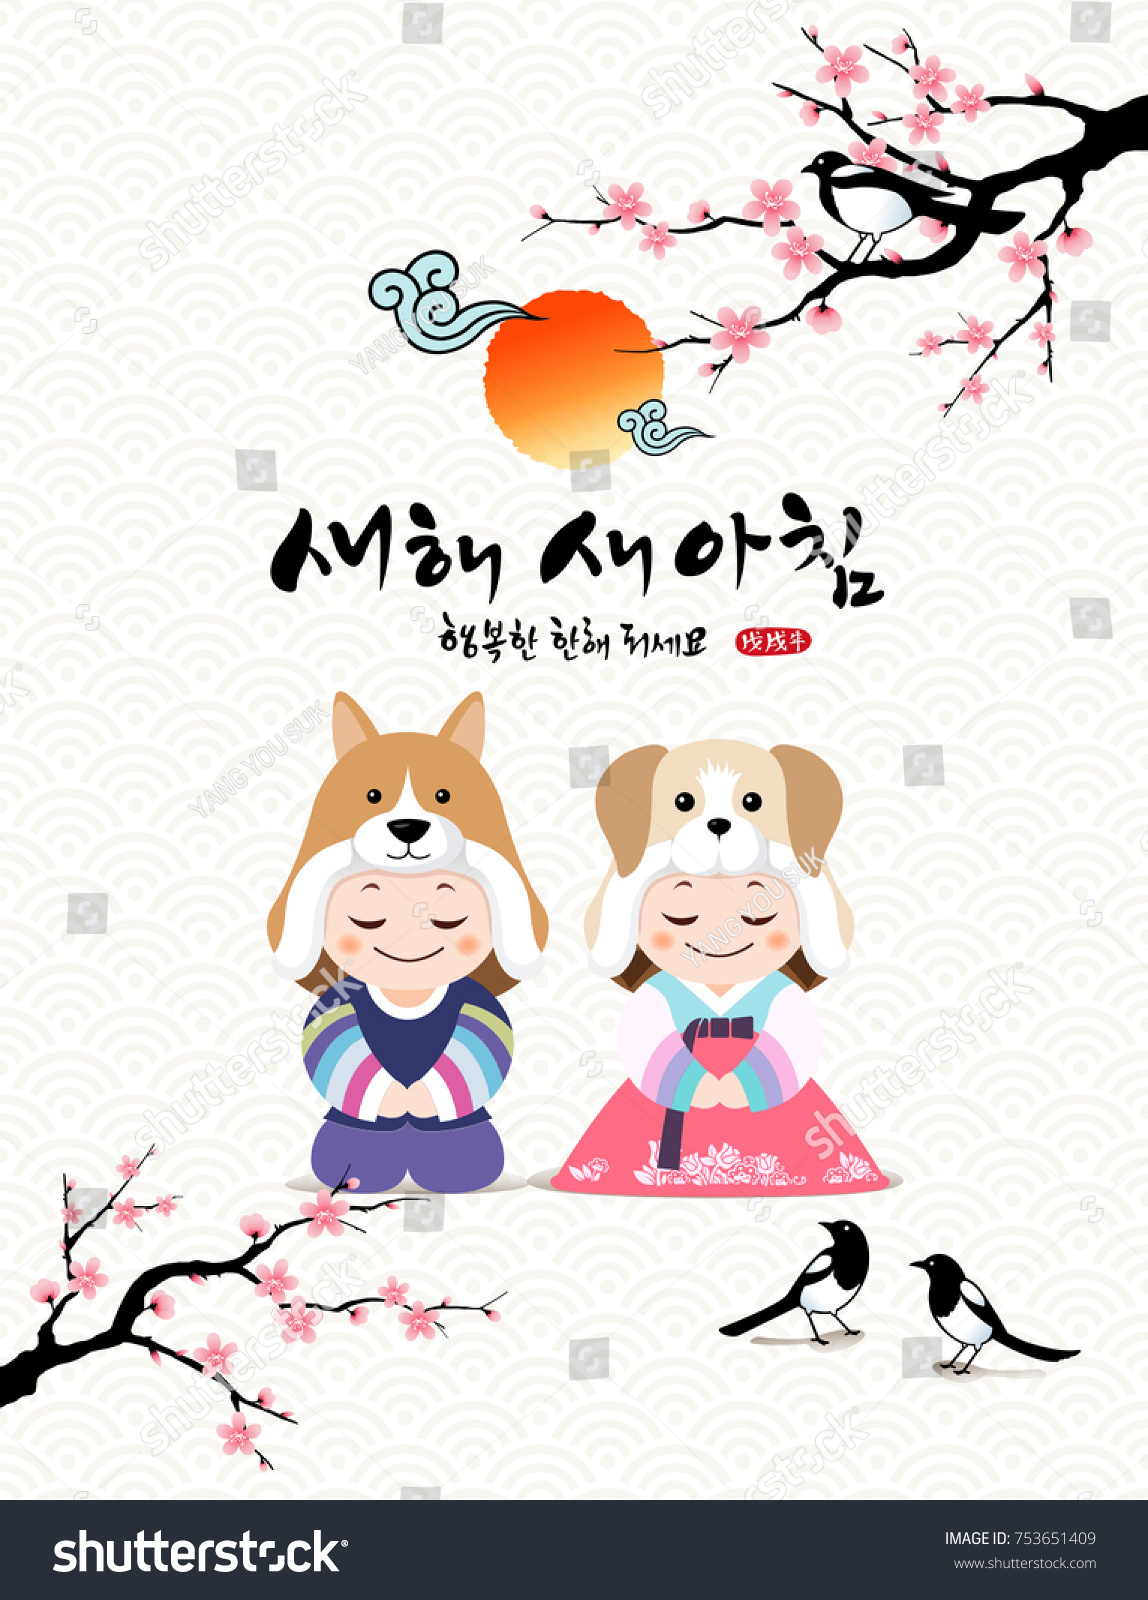 Happy new year translation korean text stock vector 753651409 happy new year translation of korean text happy new year calligraphy and kristyandbryce Choice Image